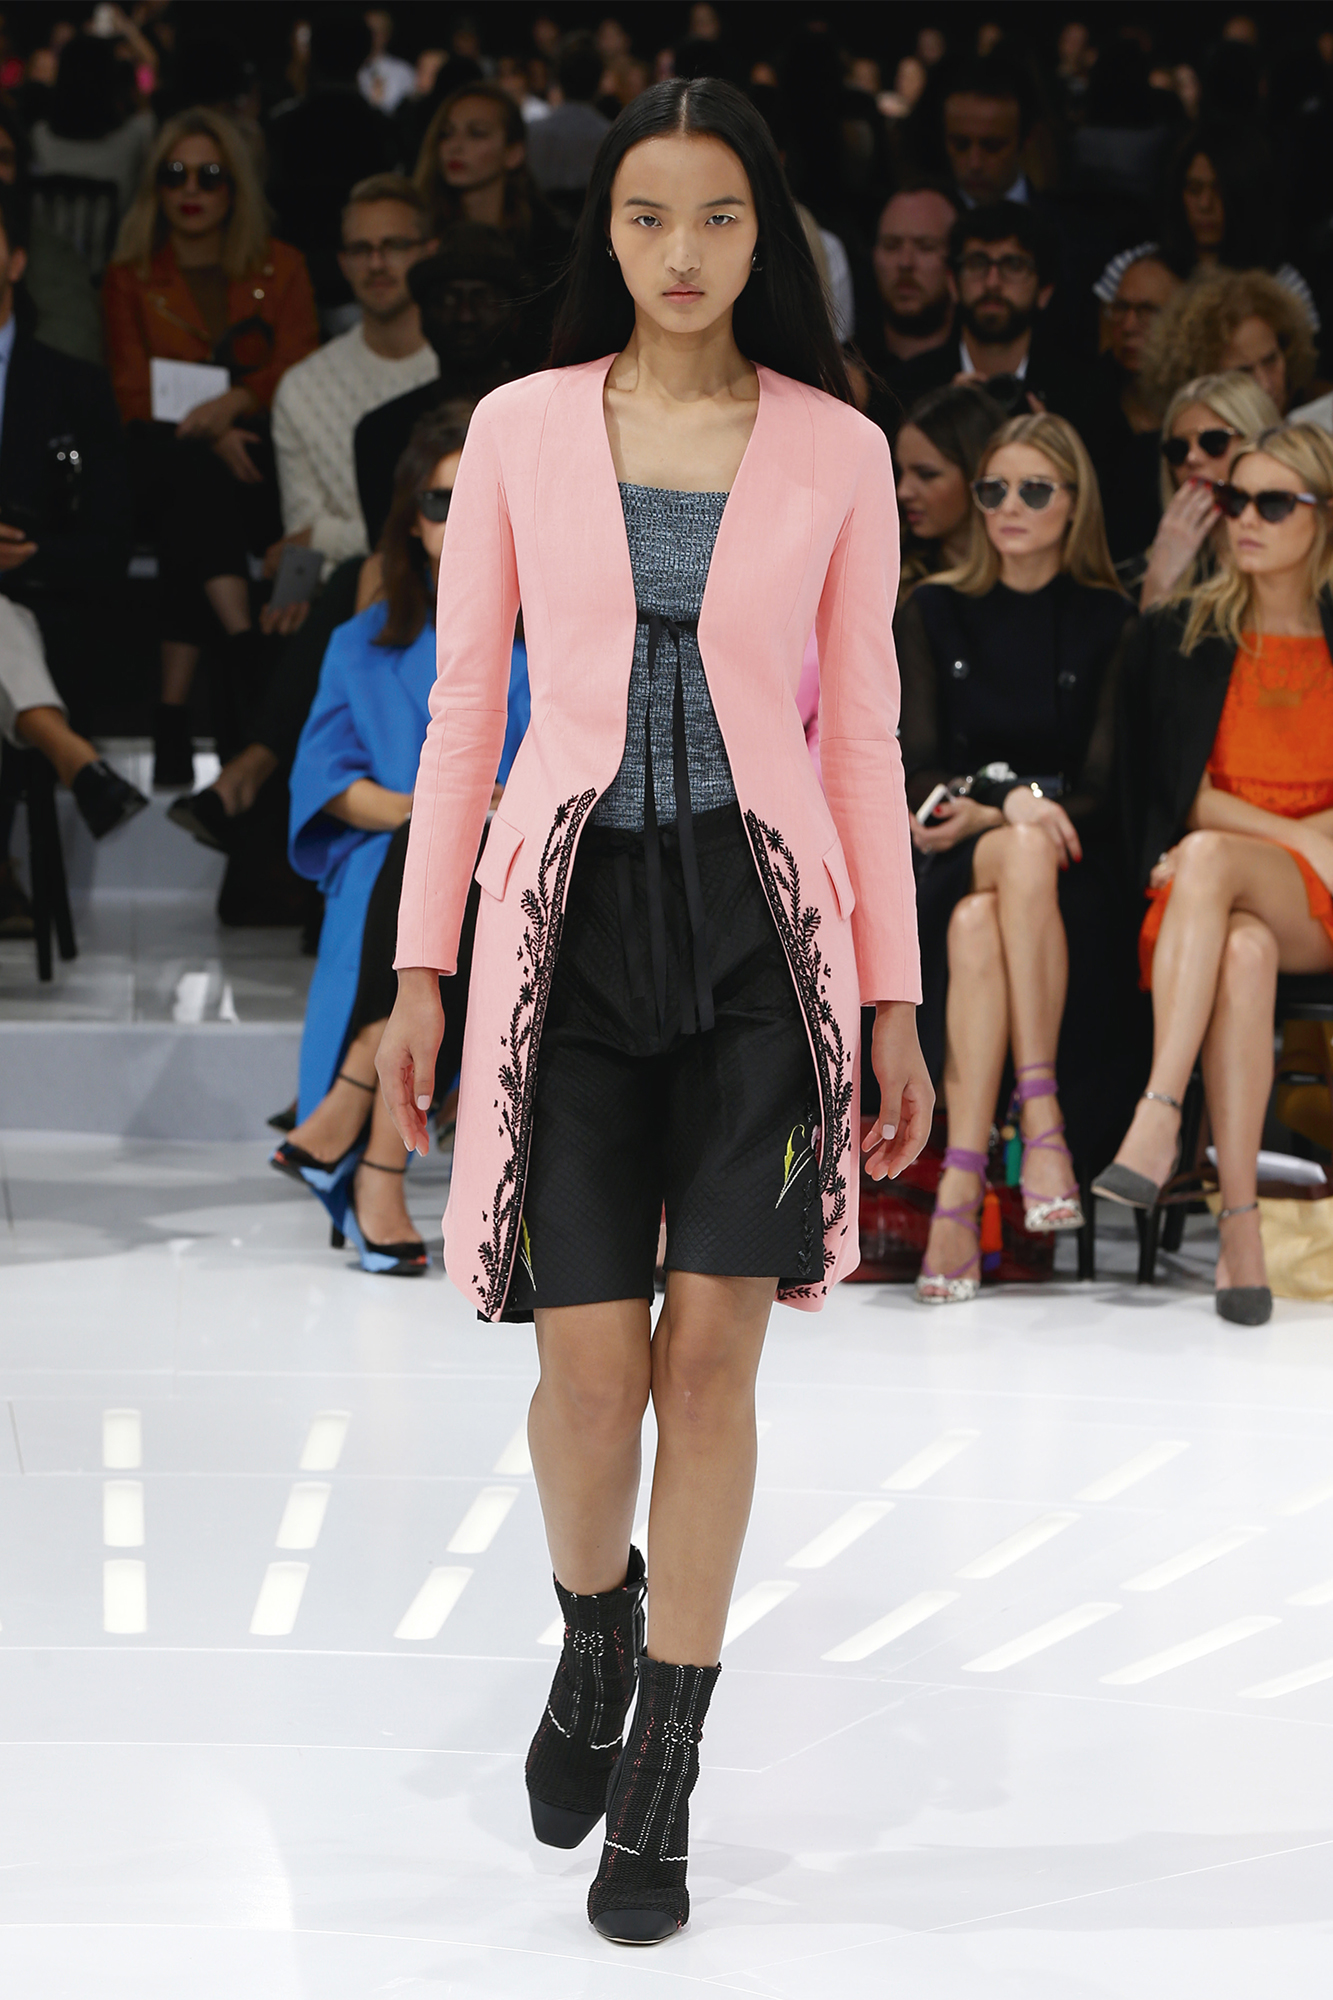 Christian Dior Haute Couture Spring-Summer Ready To Wear Dresses & Accessories Collection 2015-16 (38)